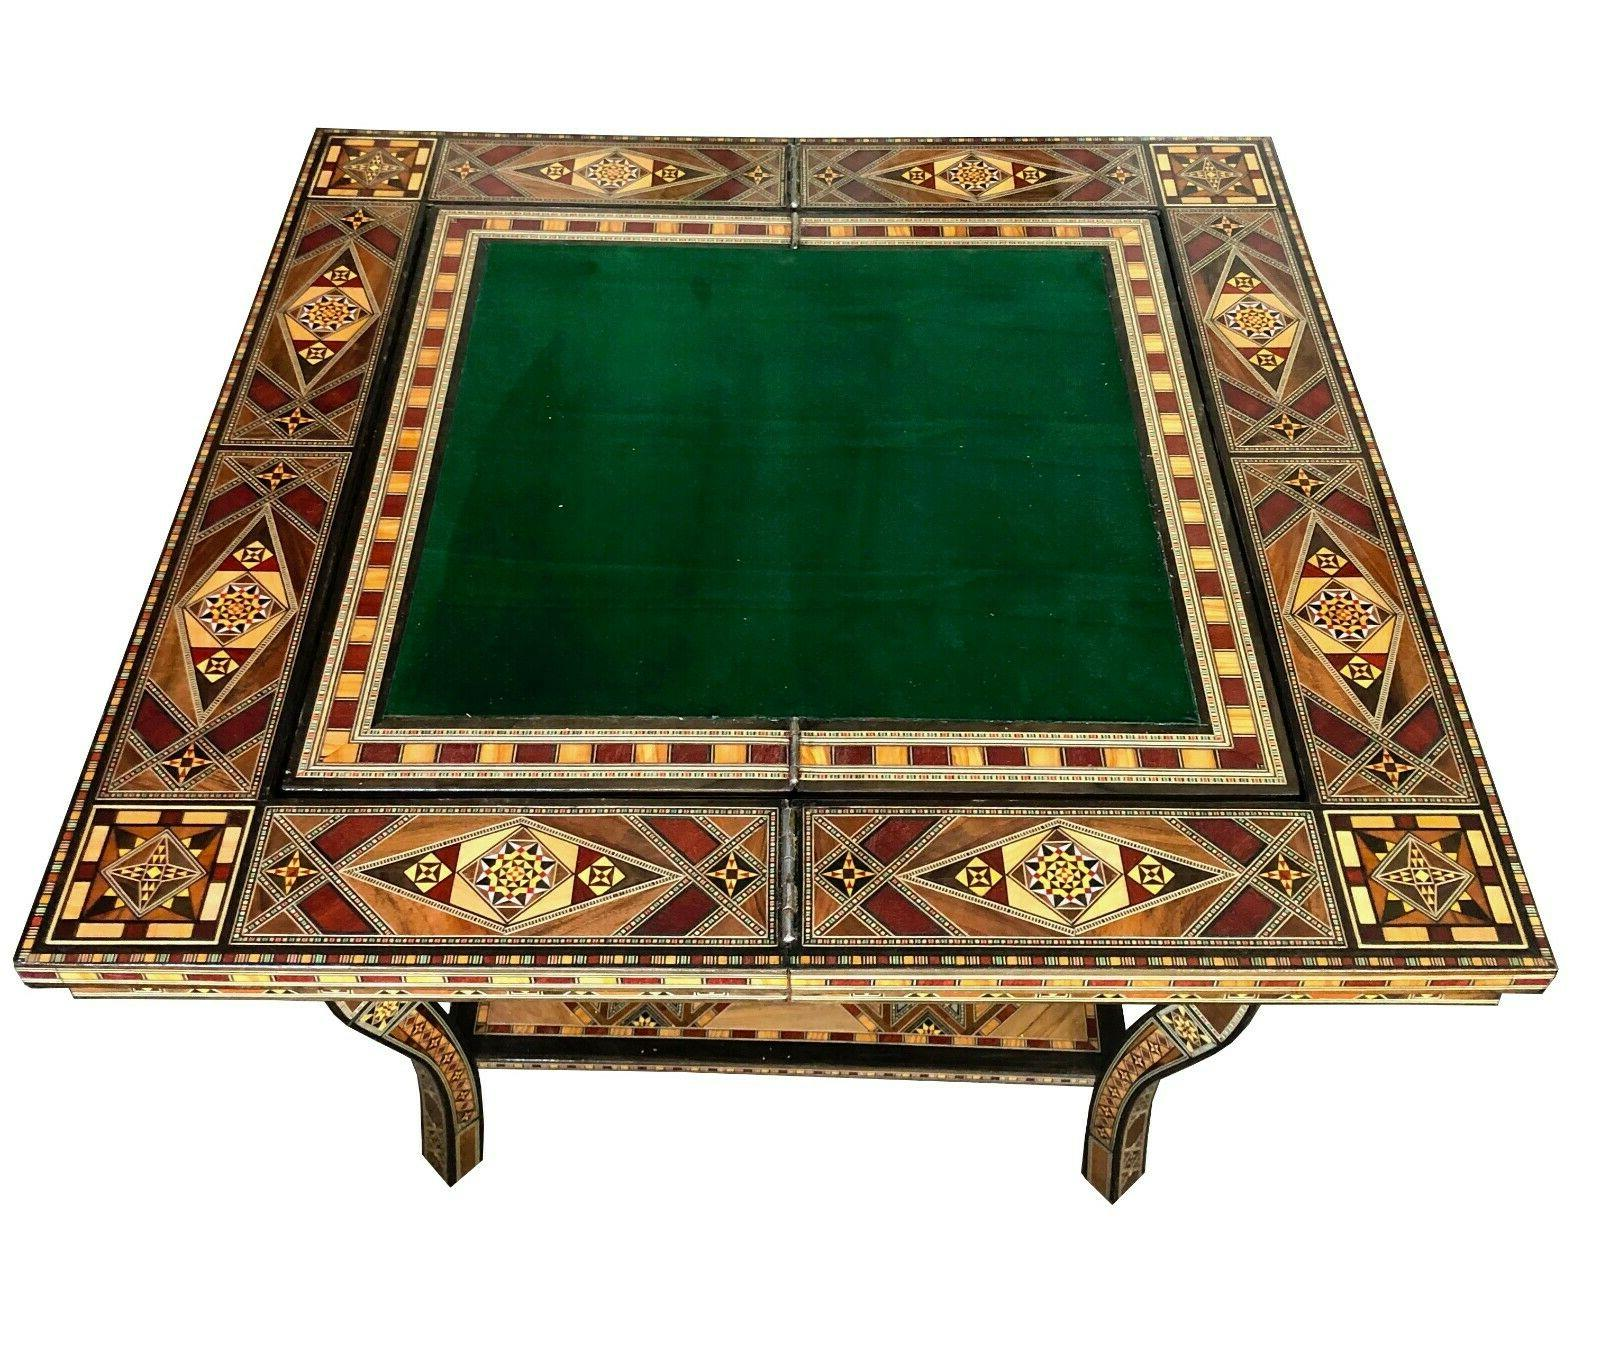 Syrian Mosaic inlay game table